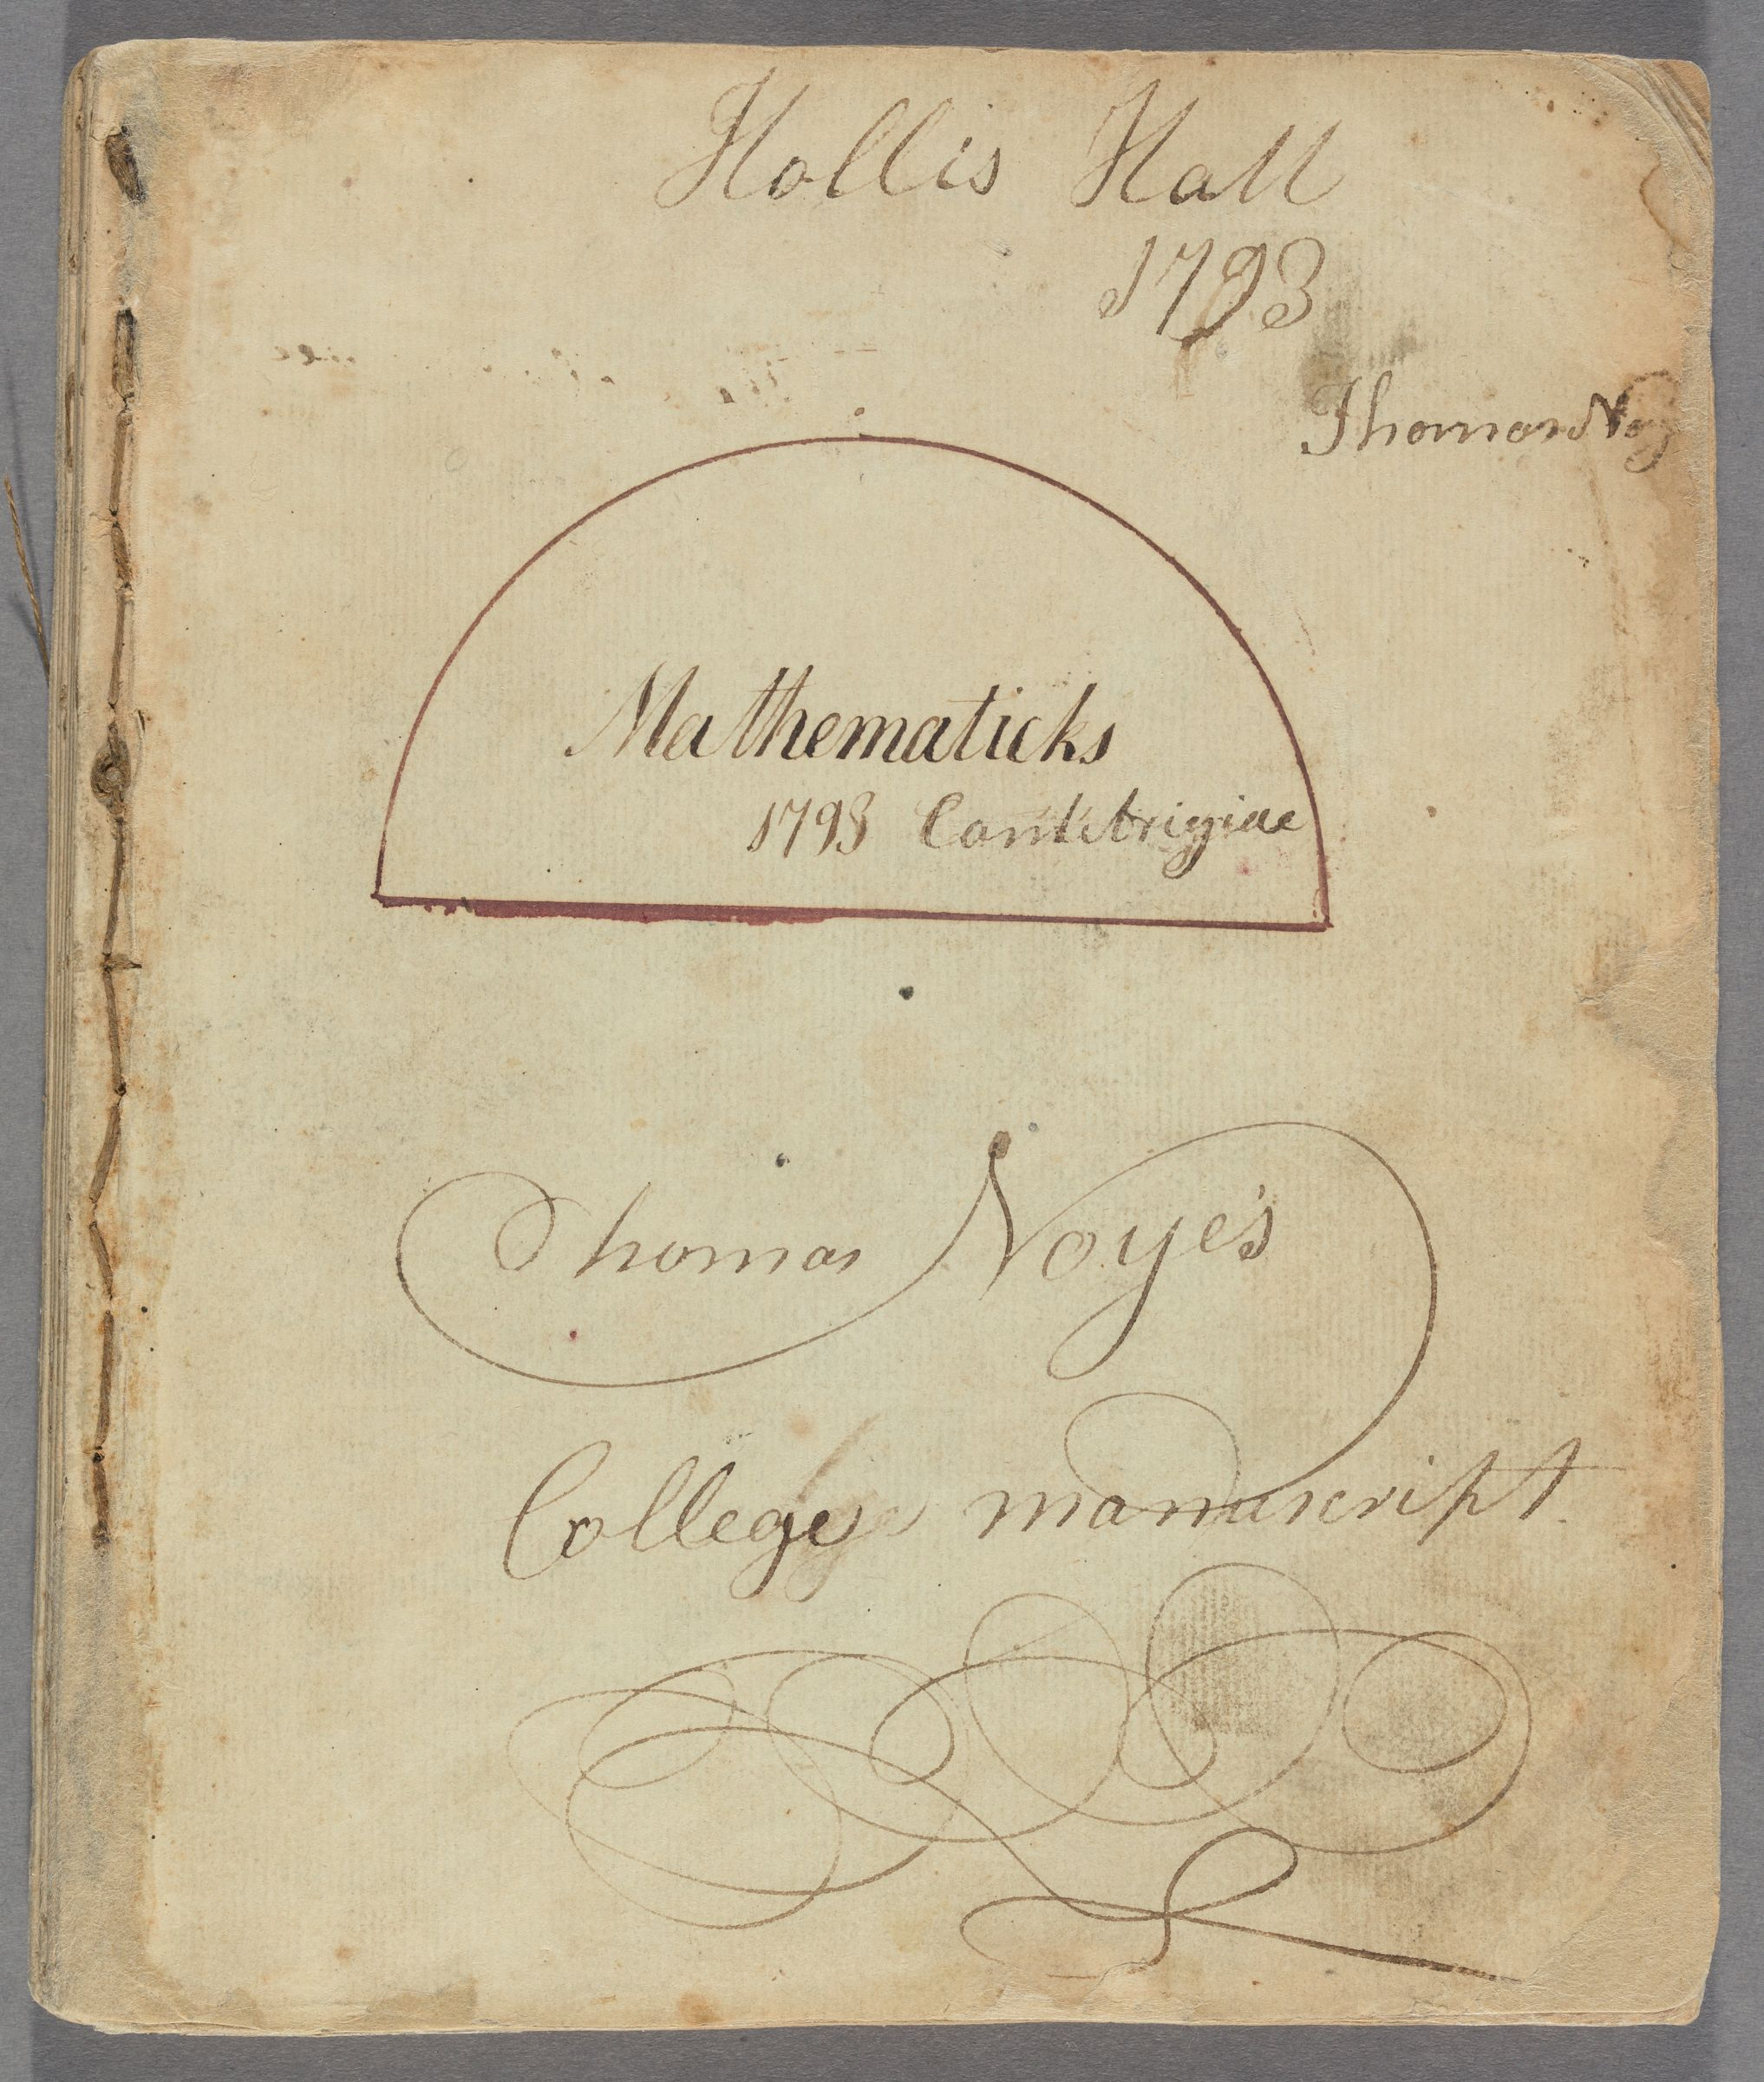 Student mathematical notebook of Thomas Noyes, 1793